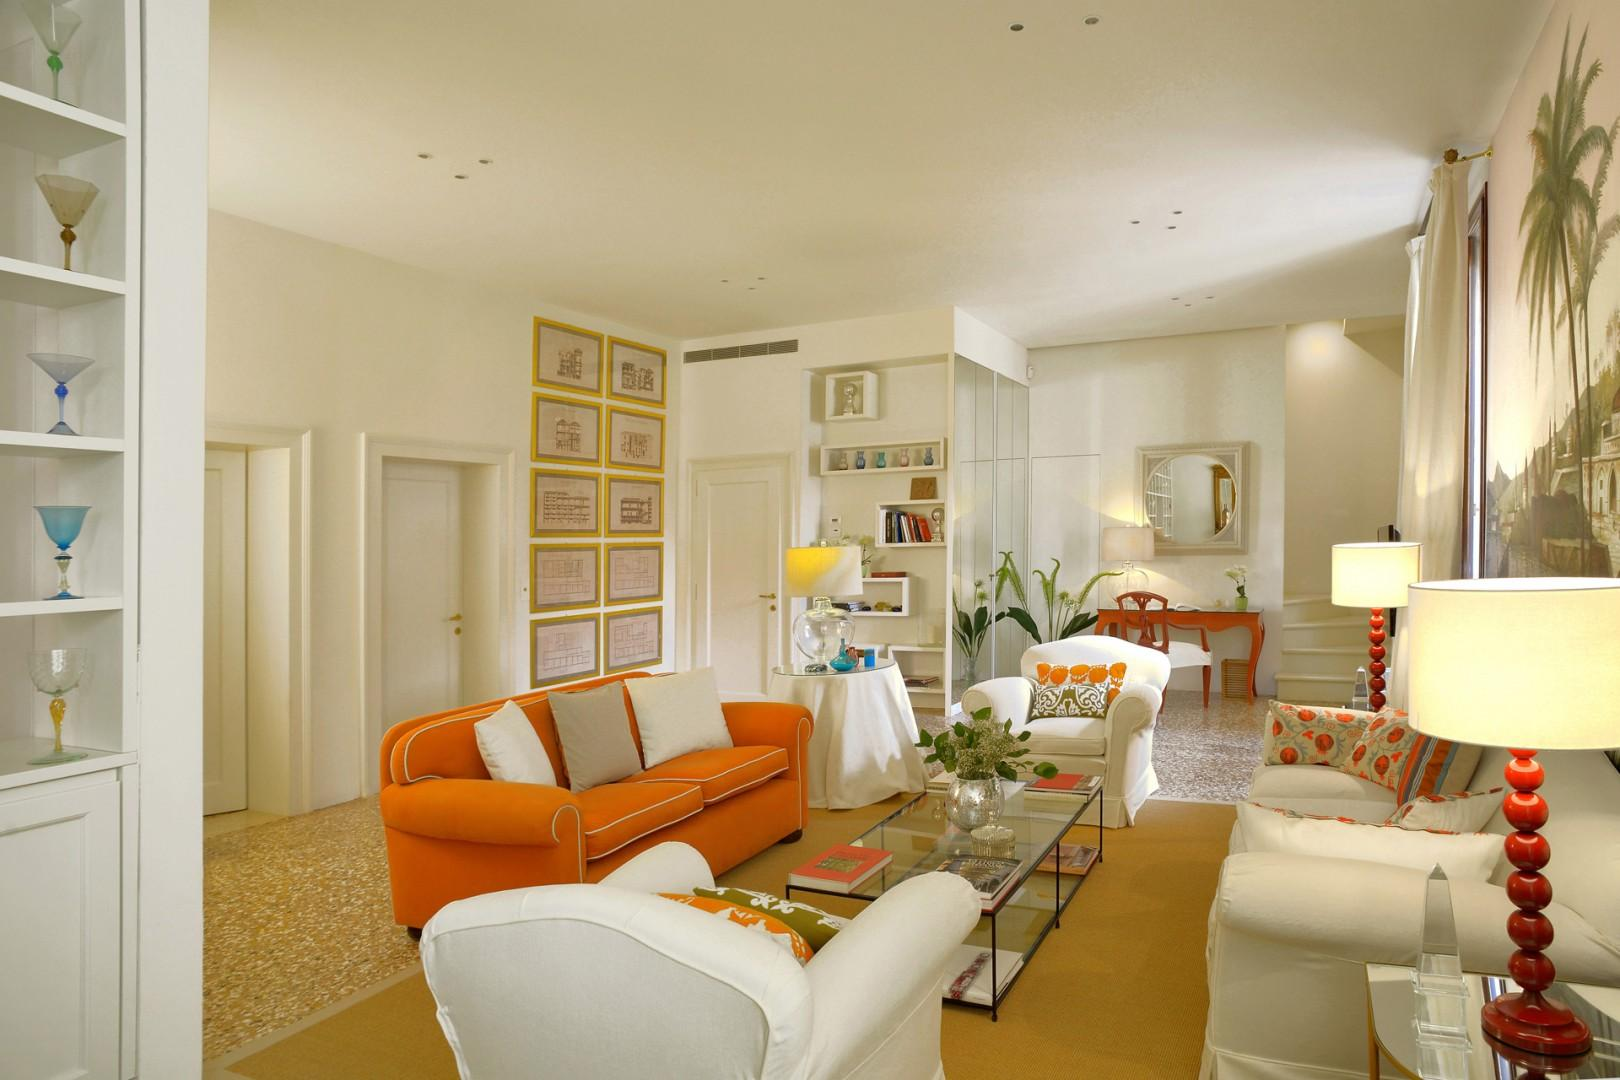 Sophisticated furnishings with pretty color highlights in the living room.